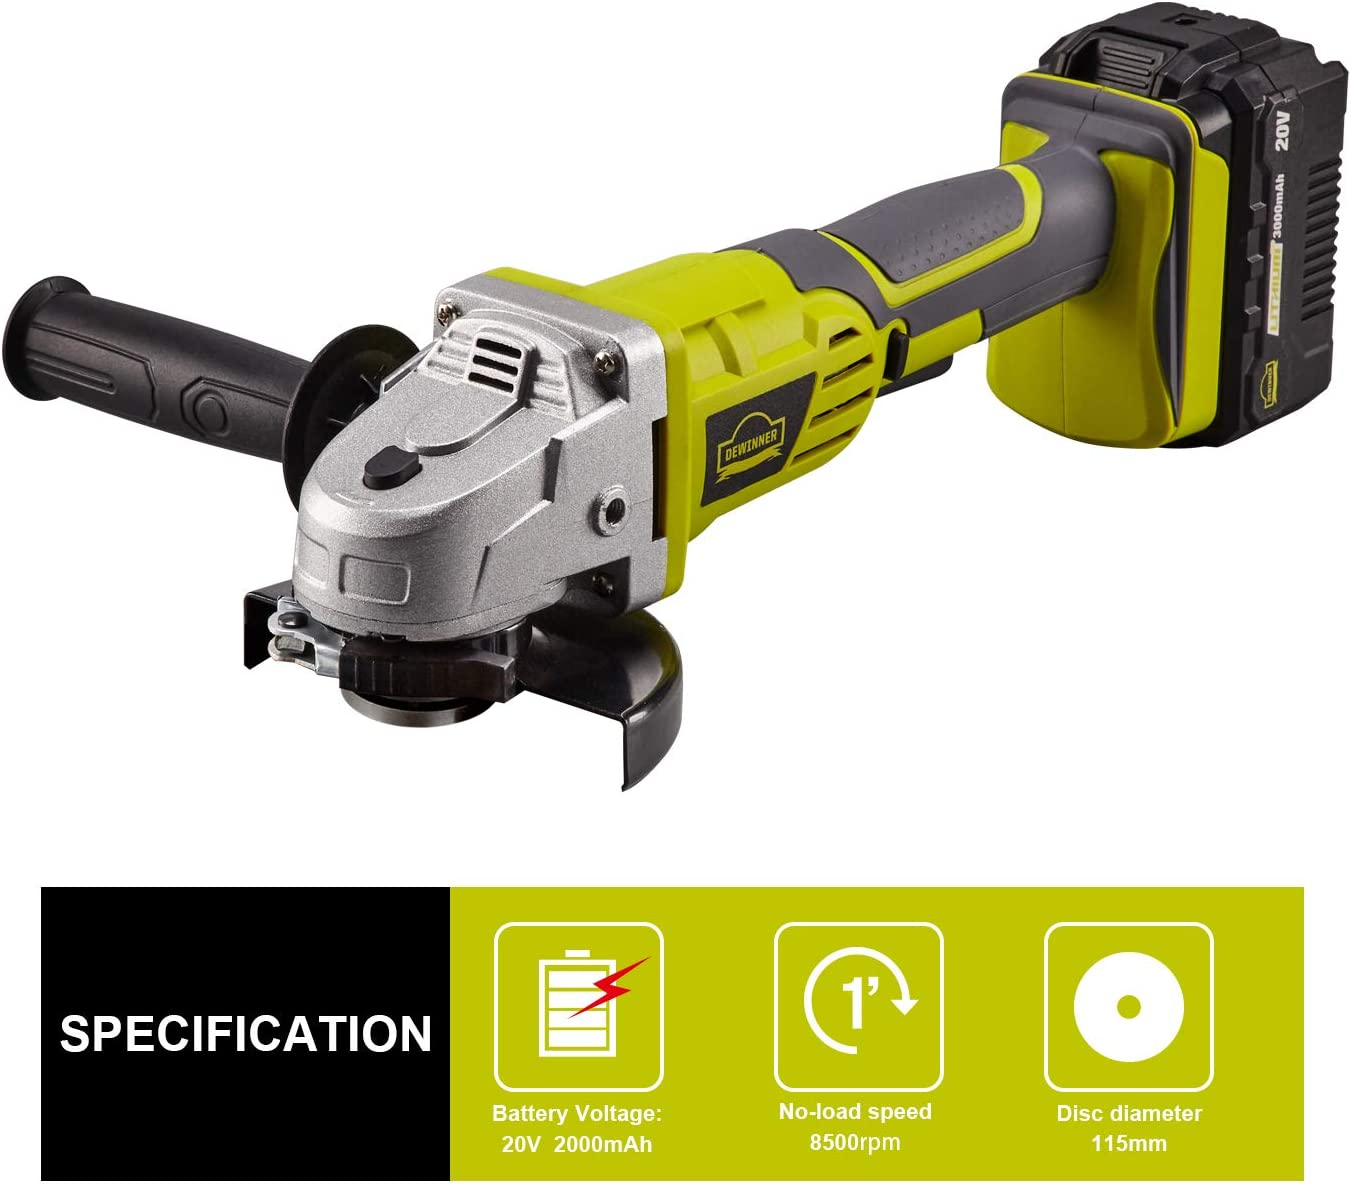 1 Grinding Wheels 8500 RPM w// 3.0Ah Lithium-Ion Battery /& Fast Charger 4 /½ 1Cutting Wheels Electric Brake 2-Position Adjustable Auxiliary Handle DEWINNER 20V Cordless Angle Grinder